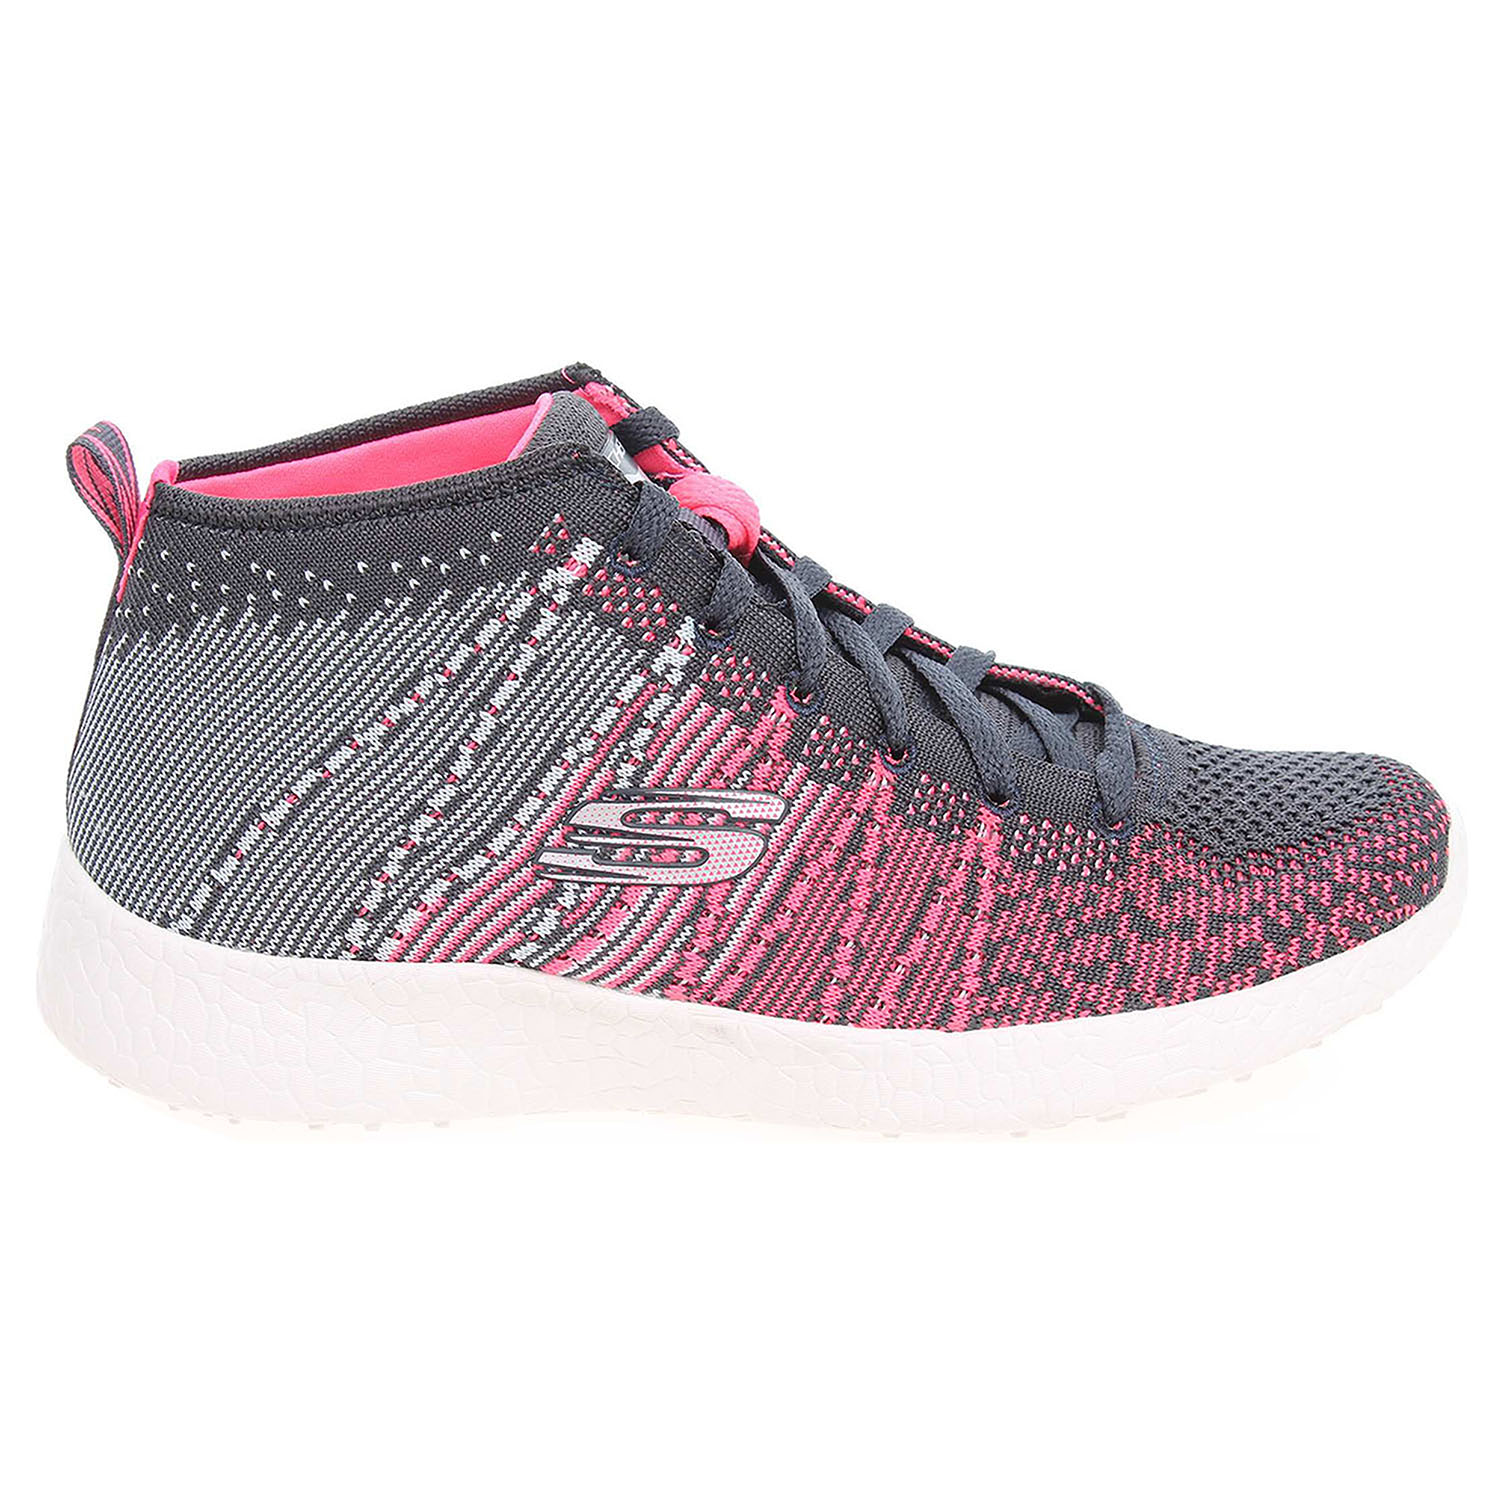 Skechers Sweet Symphony charcoal-pink 36